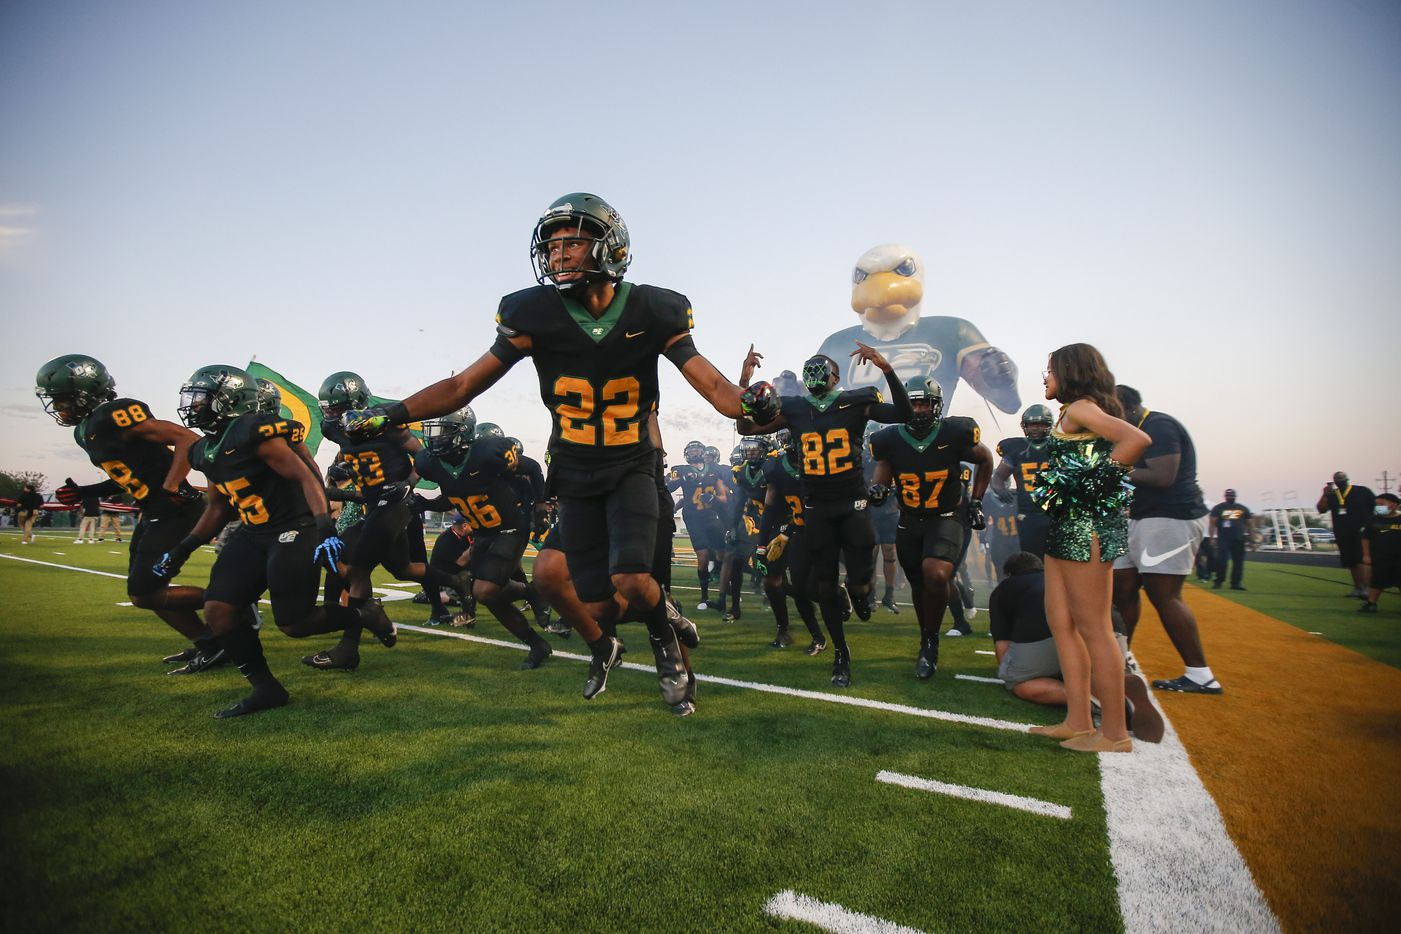 DeSoto junior defensive back Jamarion Ravenell (22) and his teammates take the field for the first half of a high school football game against Duncanville at DeSoto High School, Friday, September 17, 2021. (Brandon Wade/Special Contributor)